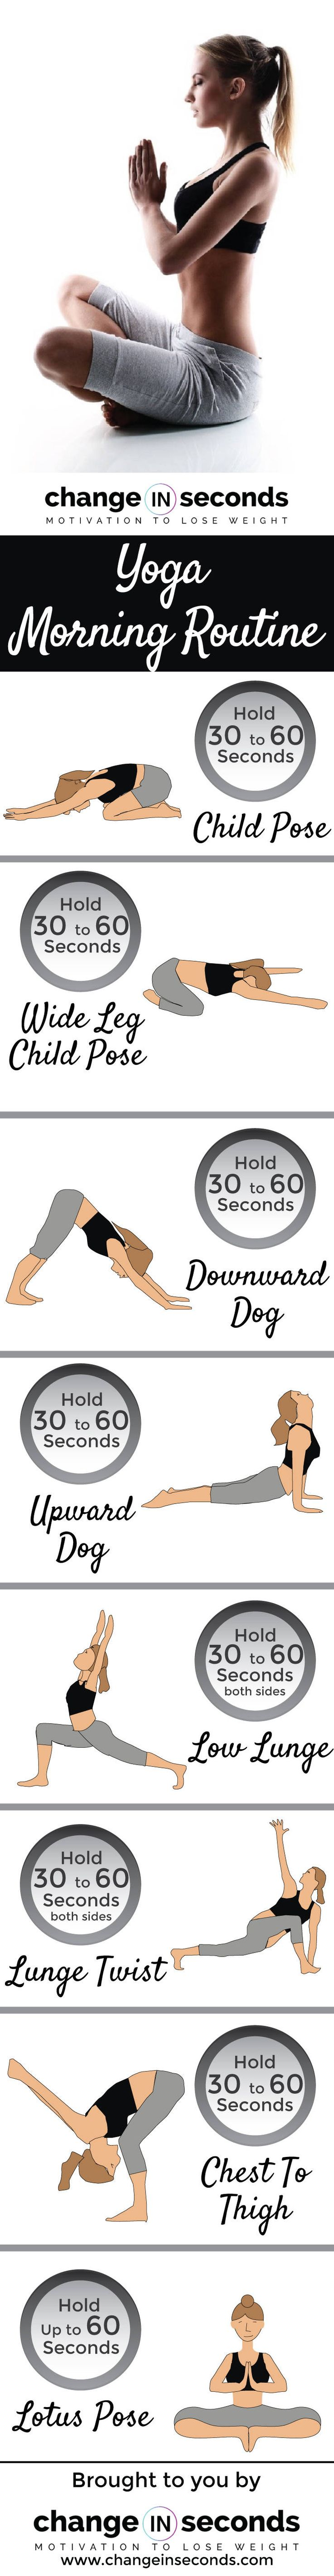 Yoga Morning Routine (Sequence) Download FREE PDF